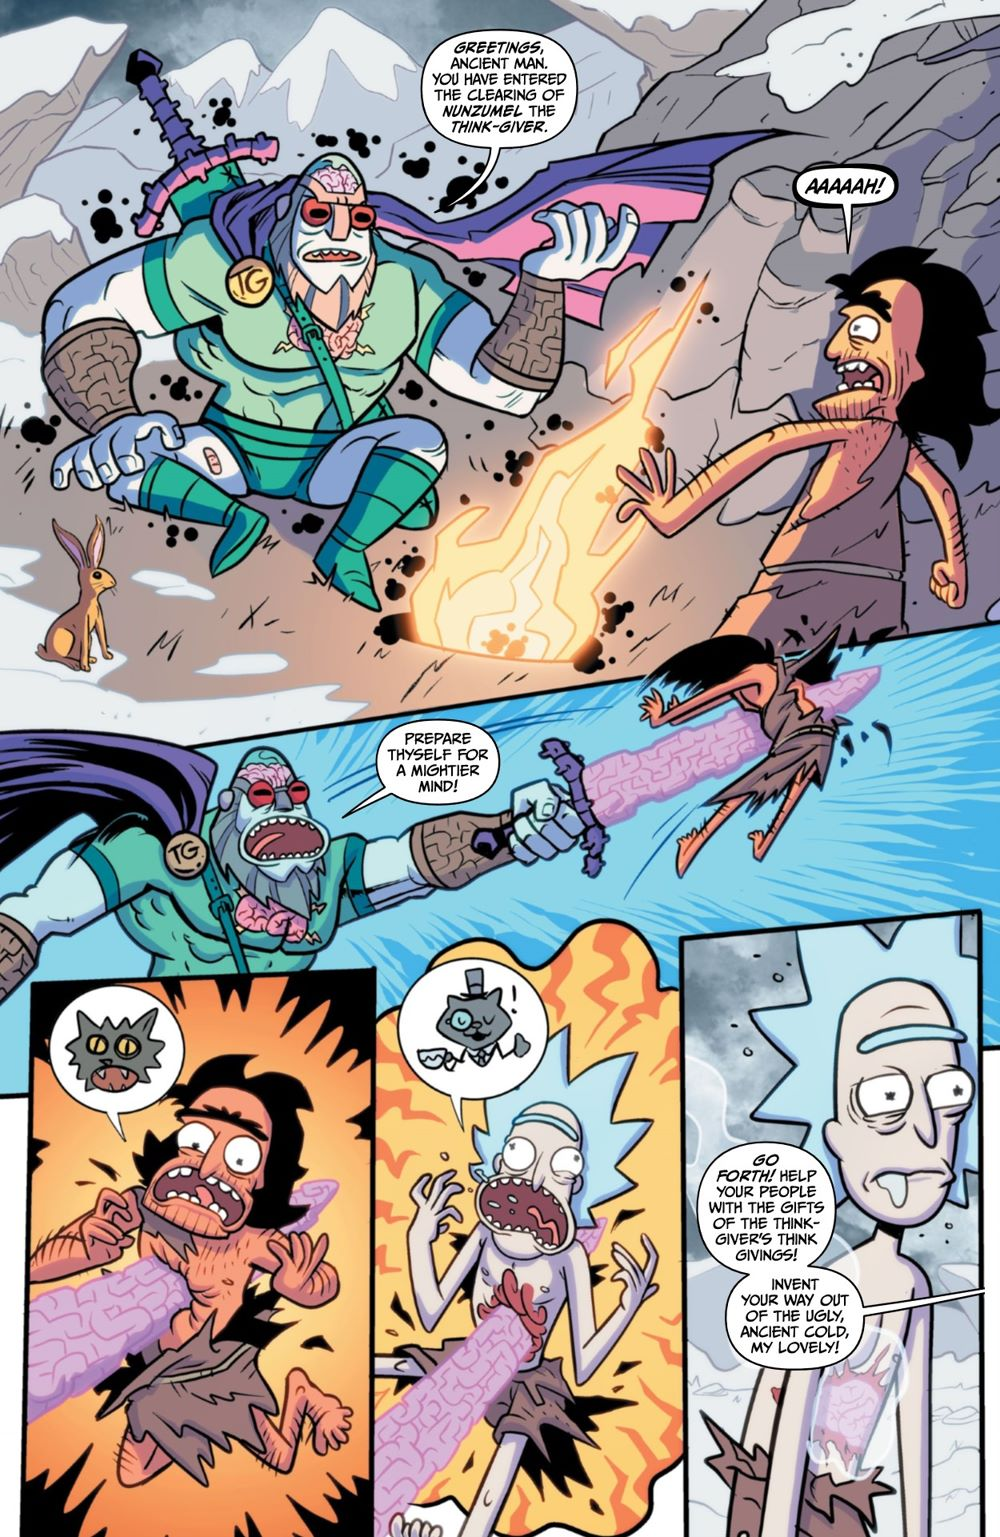 RM-RNH-1-MARKETING-08 ComicList Previews: RICK AND MORTY RICK'S NEW HAT #1